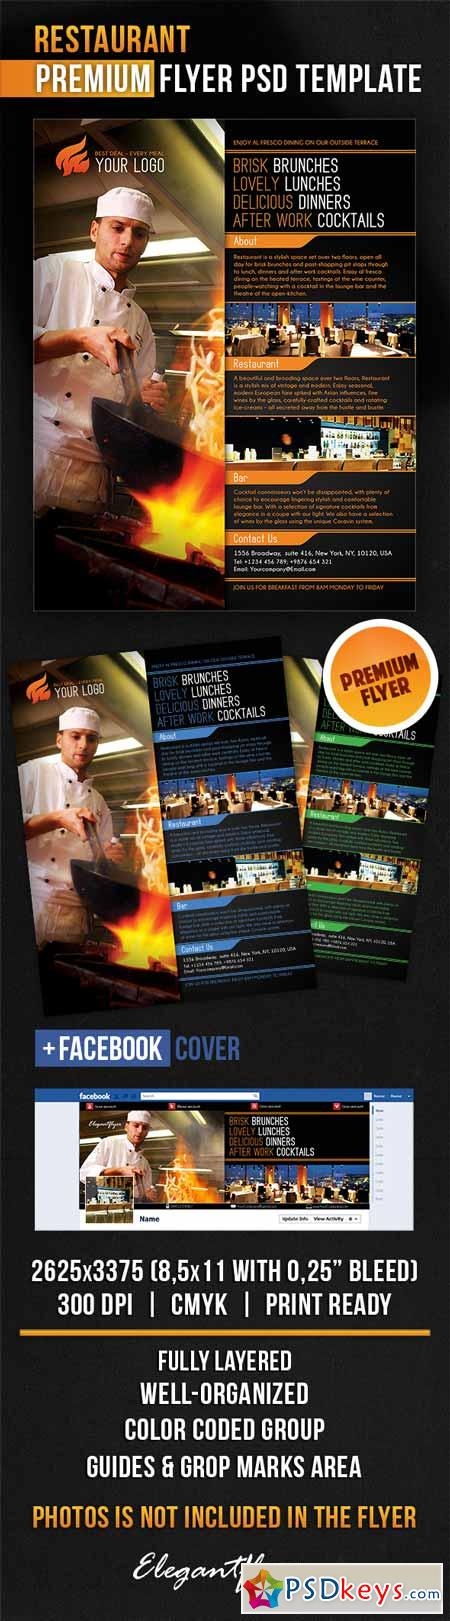 Restaurant flyer psd template facebook cover free